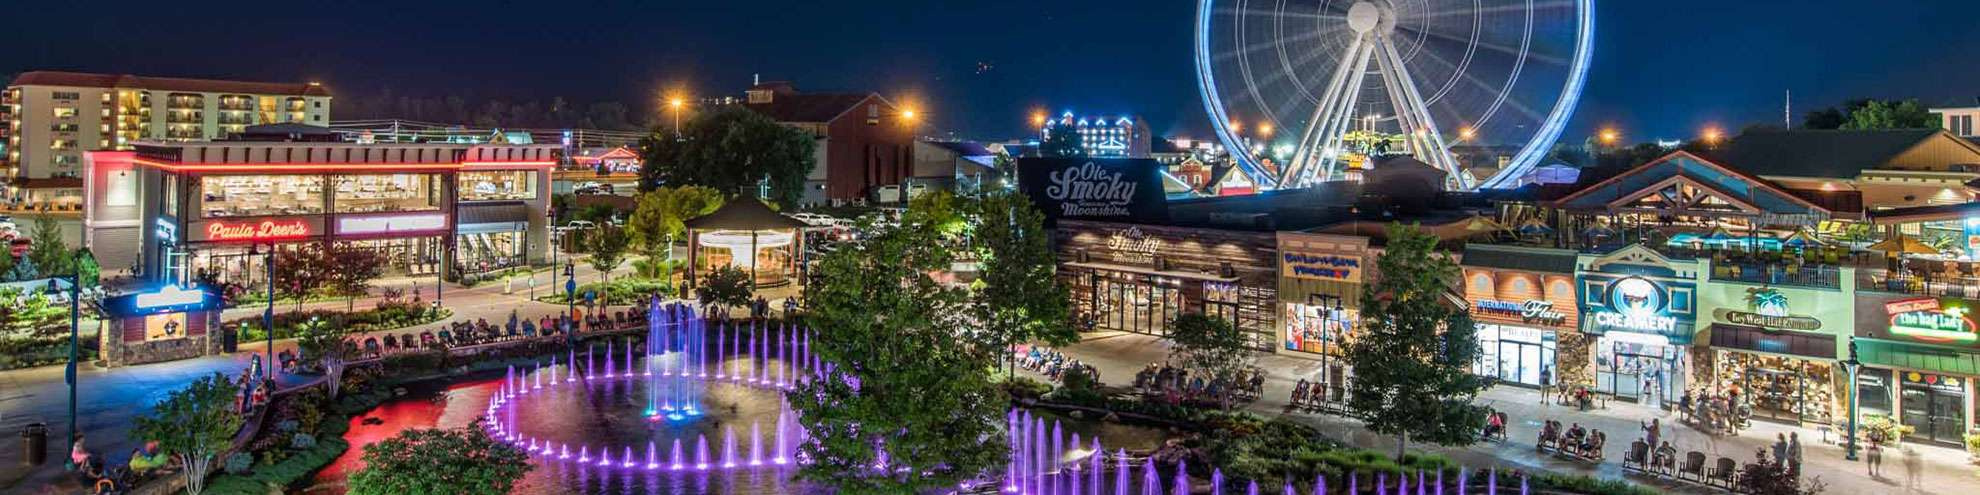 Smoky Mountain attraction discounts